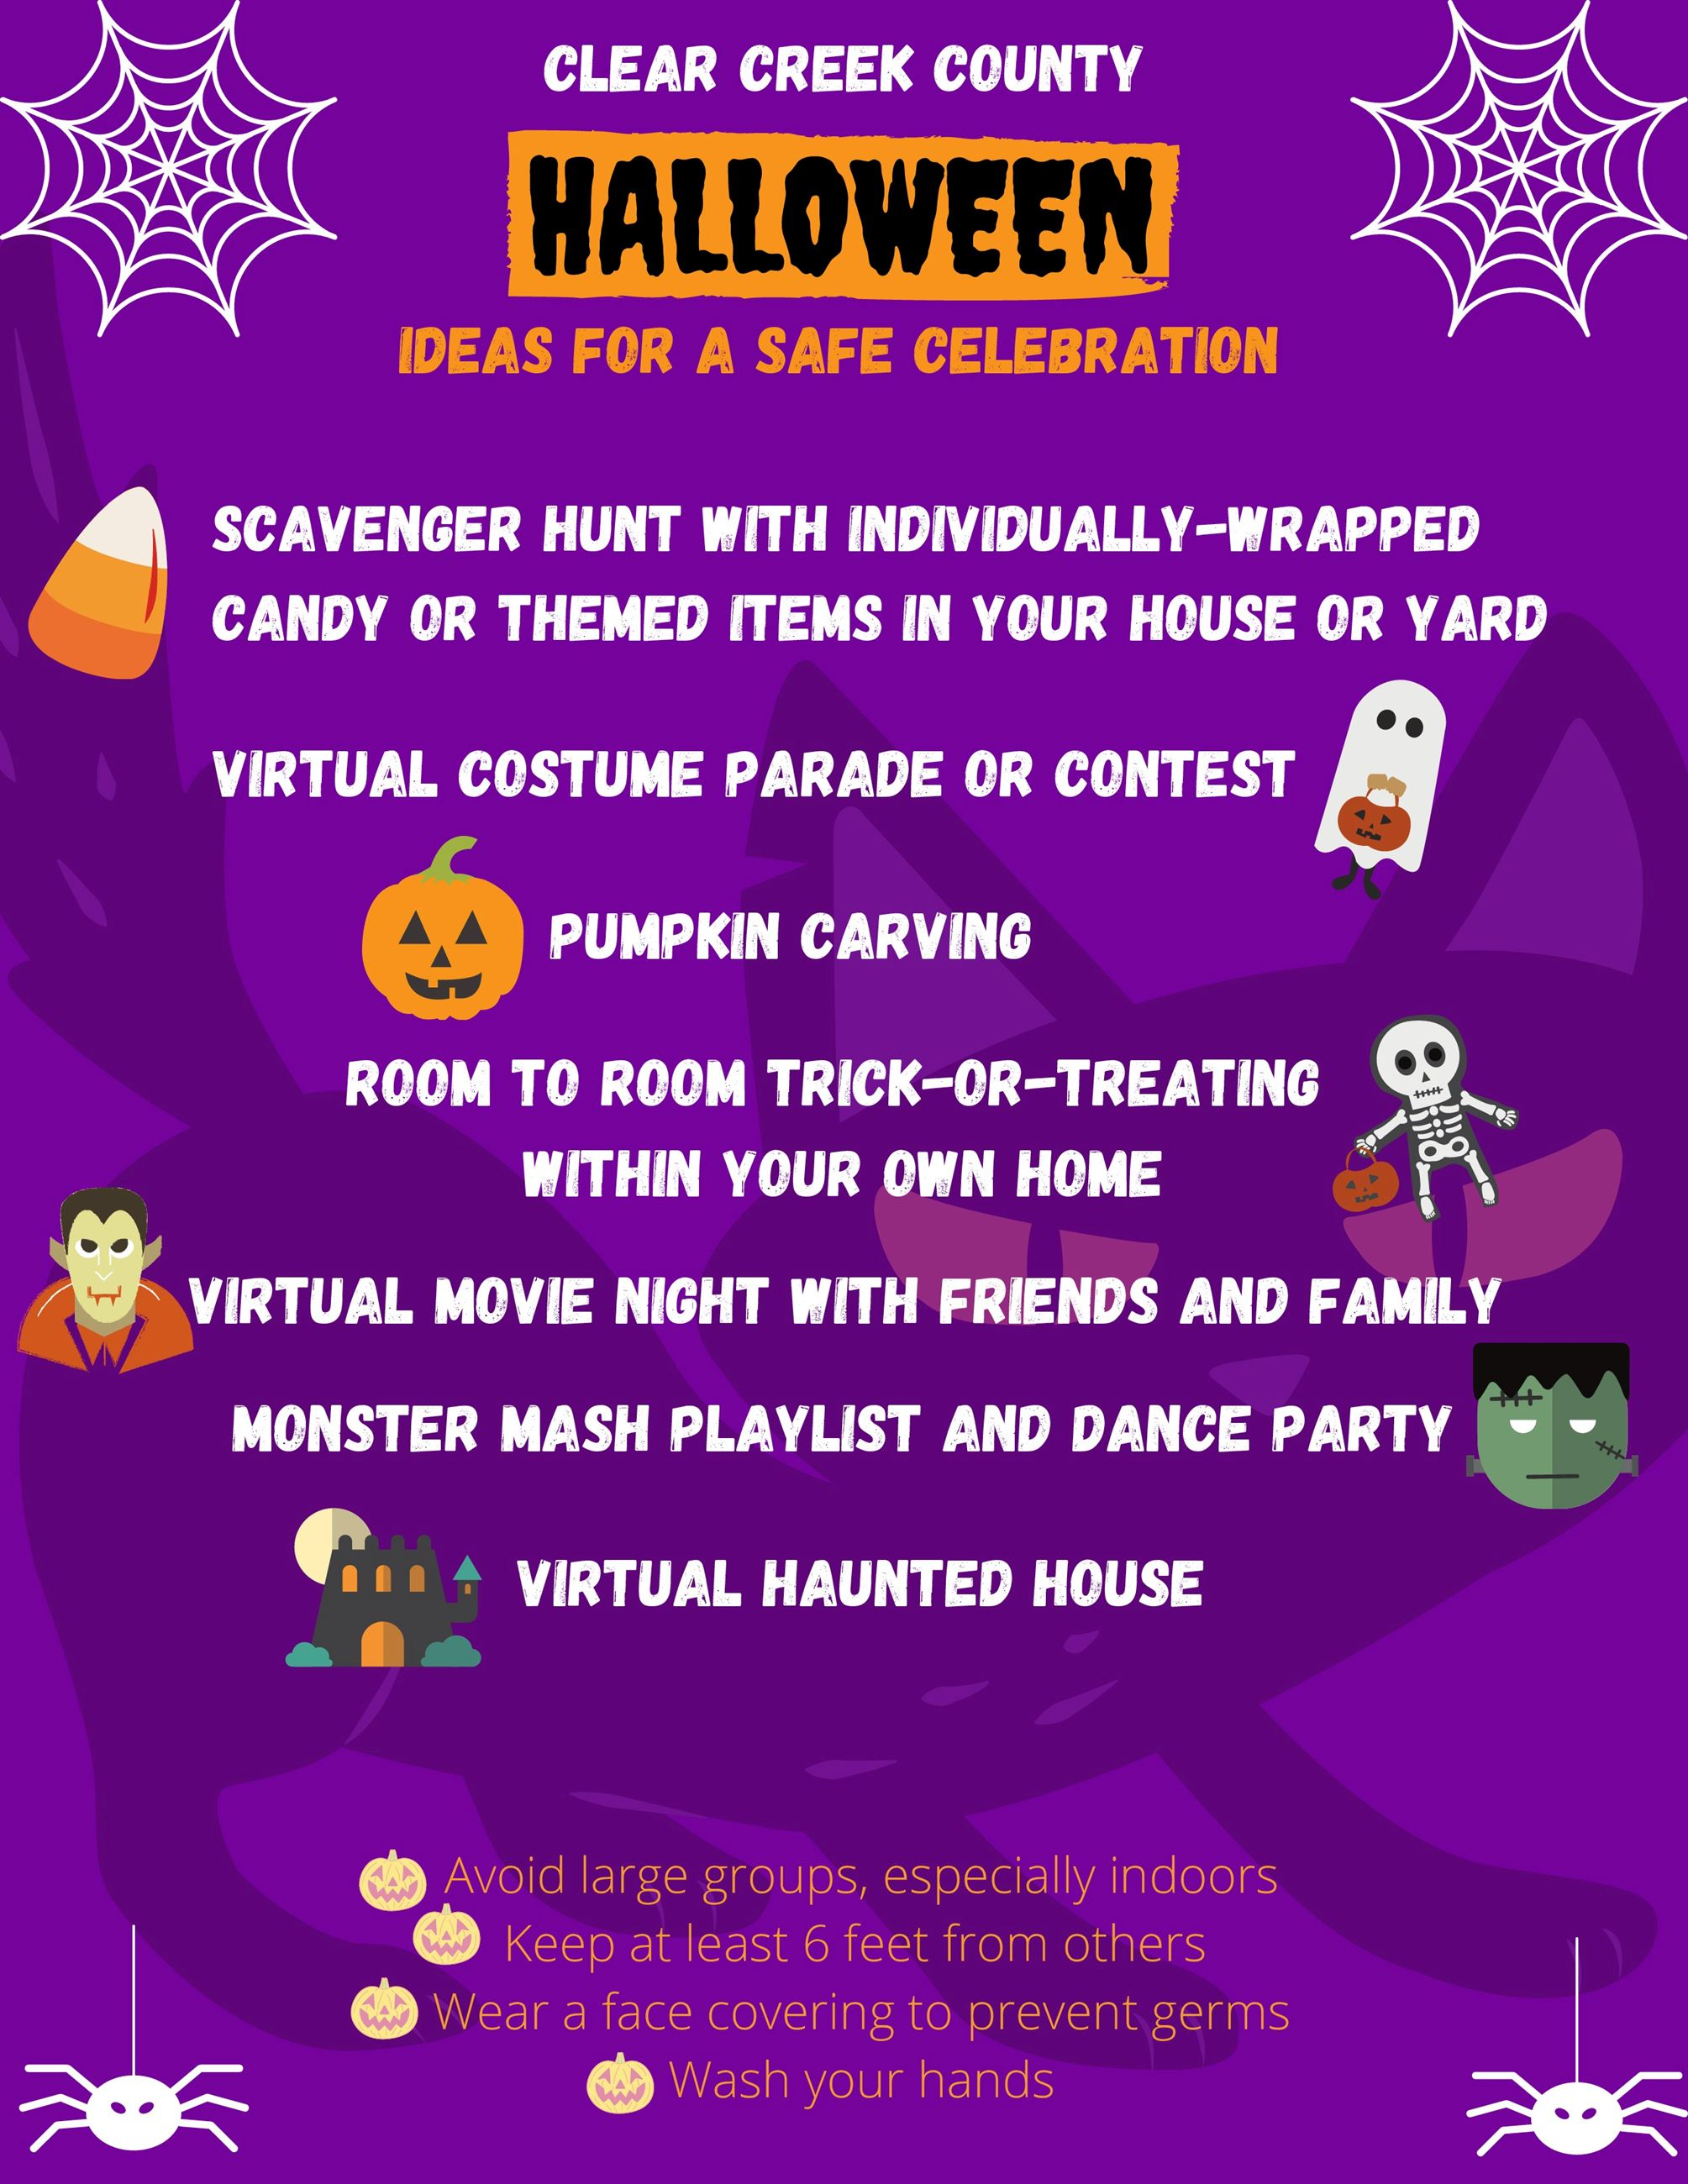 Ideas for a Safe Halloween-page-0